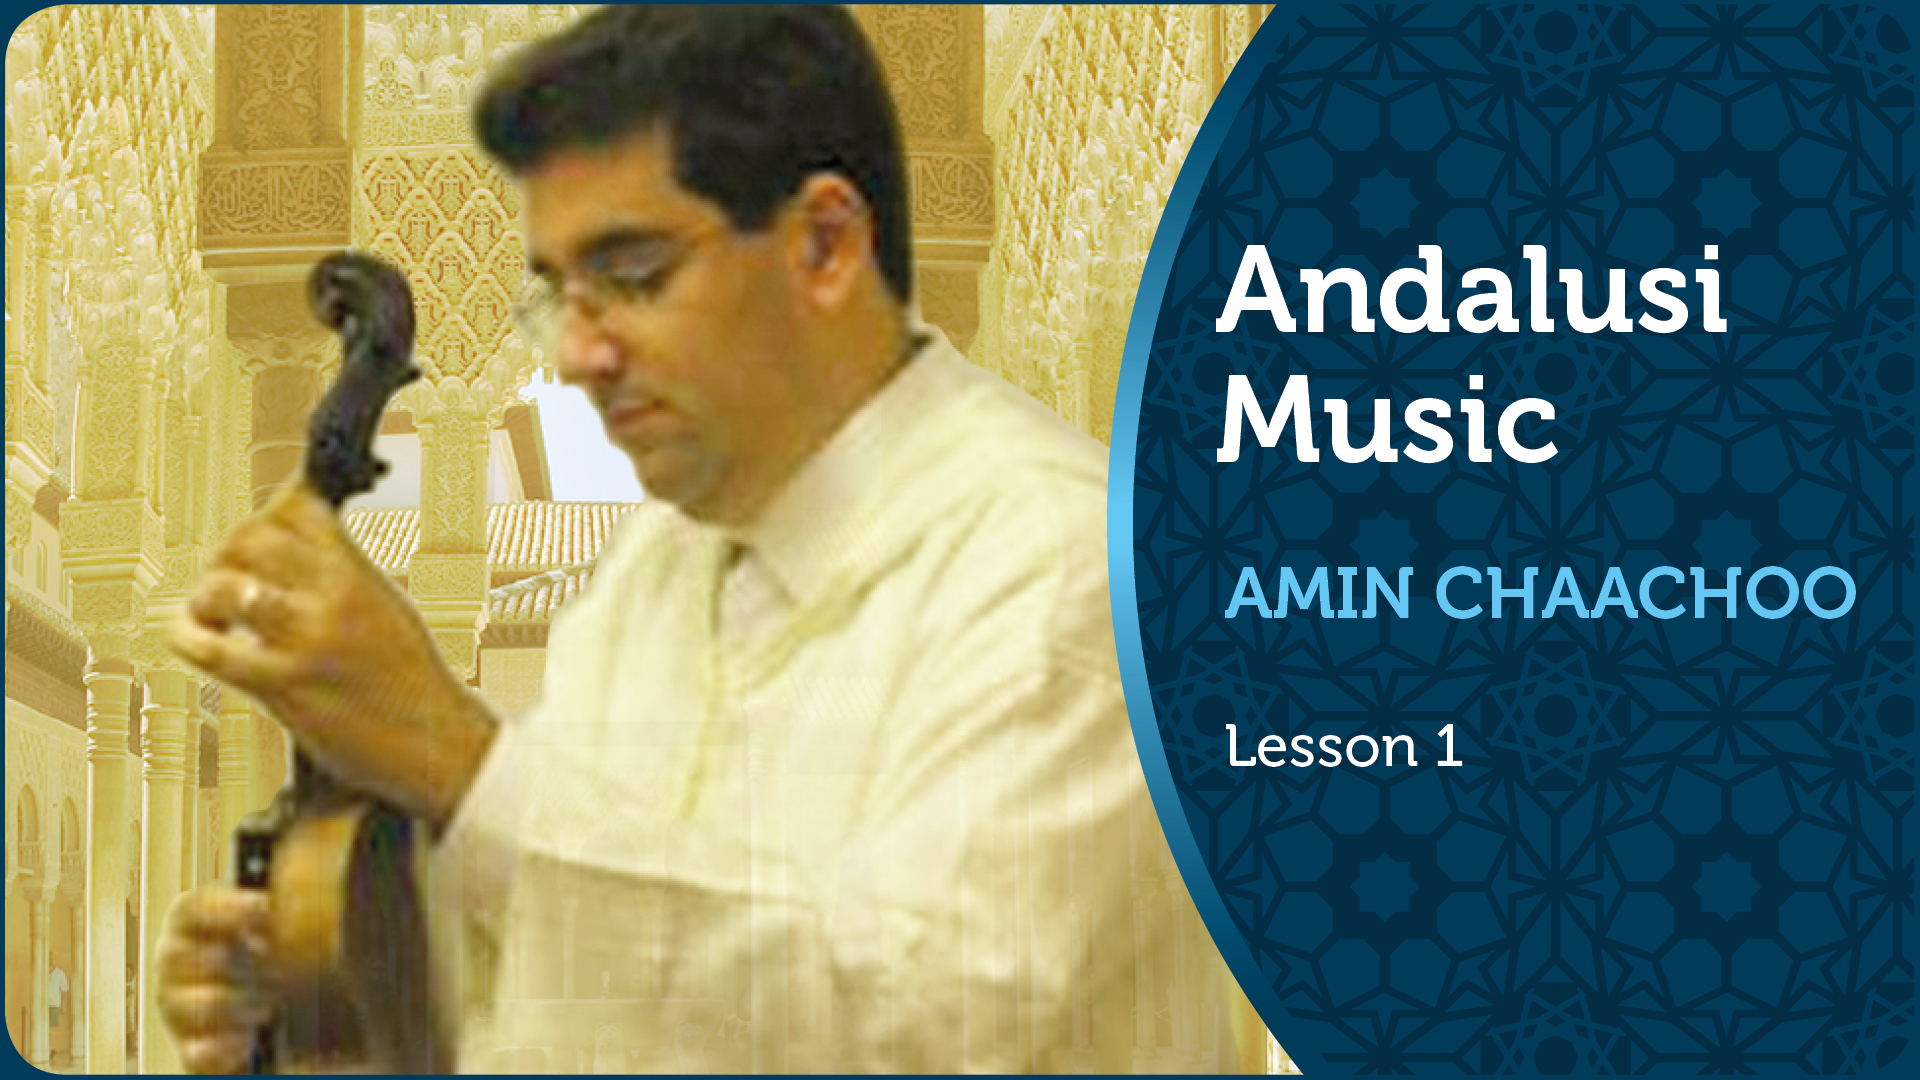 Andalusi Music by Amin Chaachoo | Lesson 1